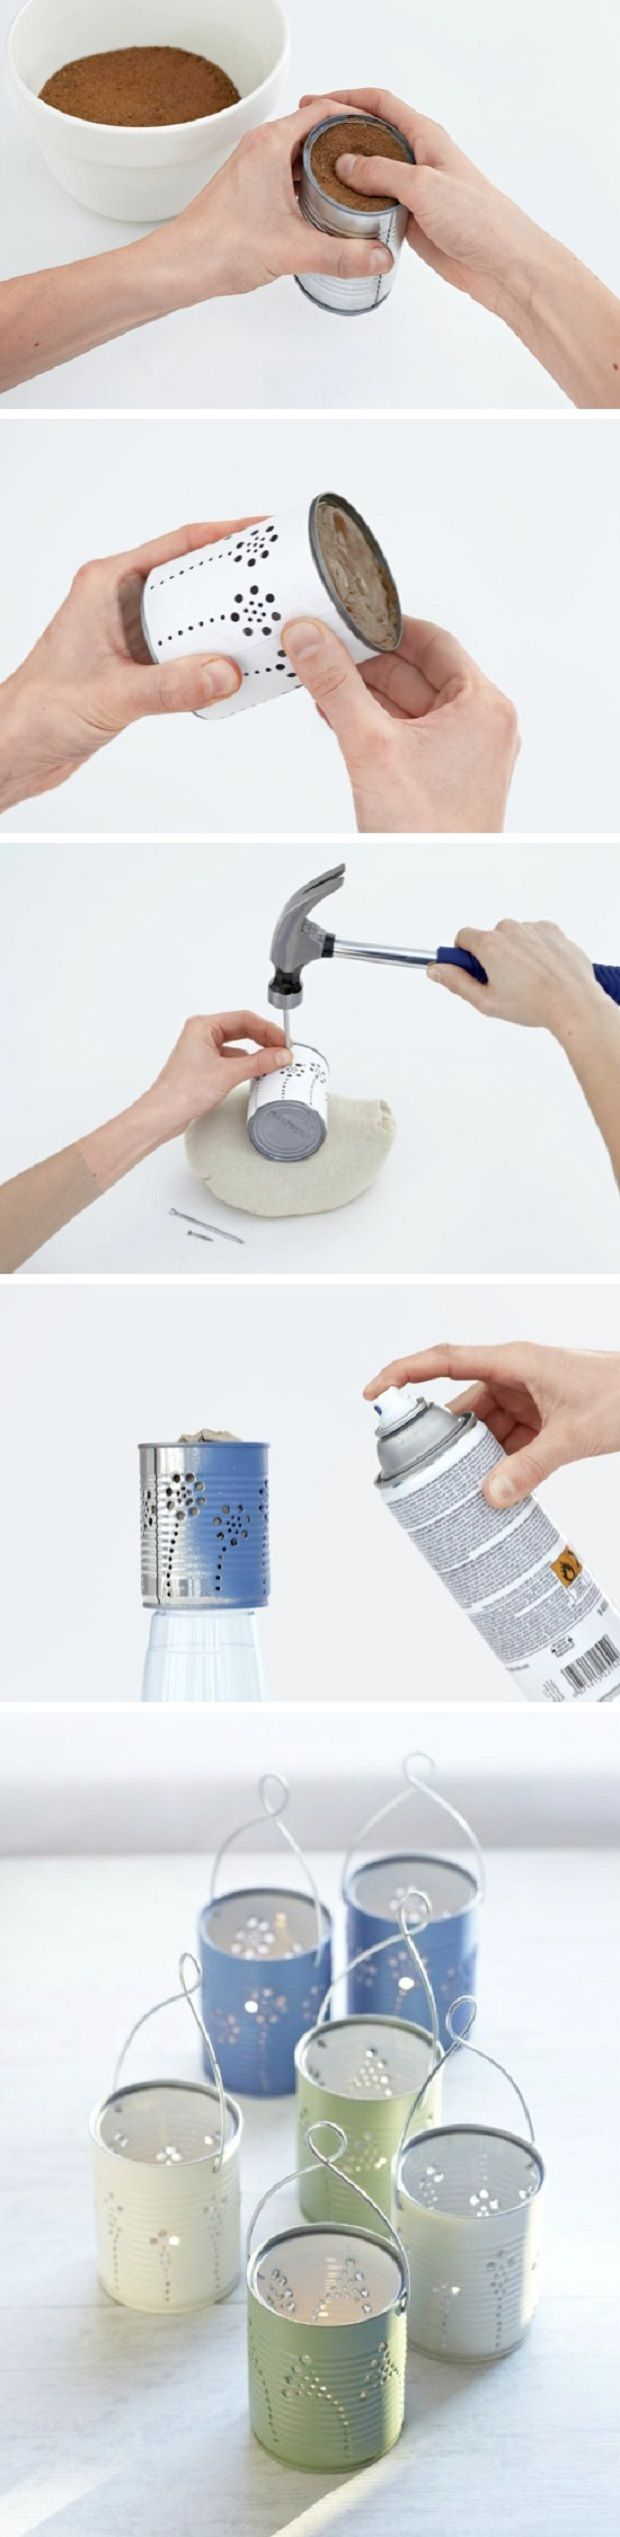 Useful and Clever DIY Can Projects